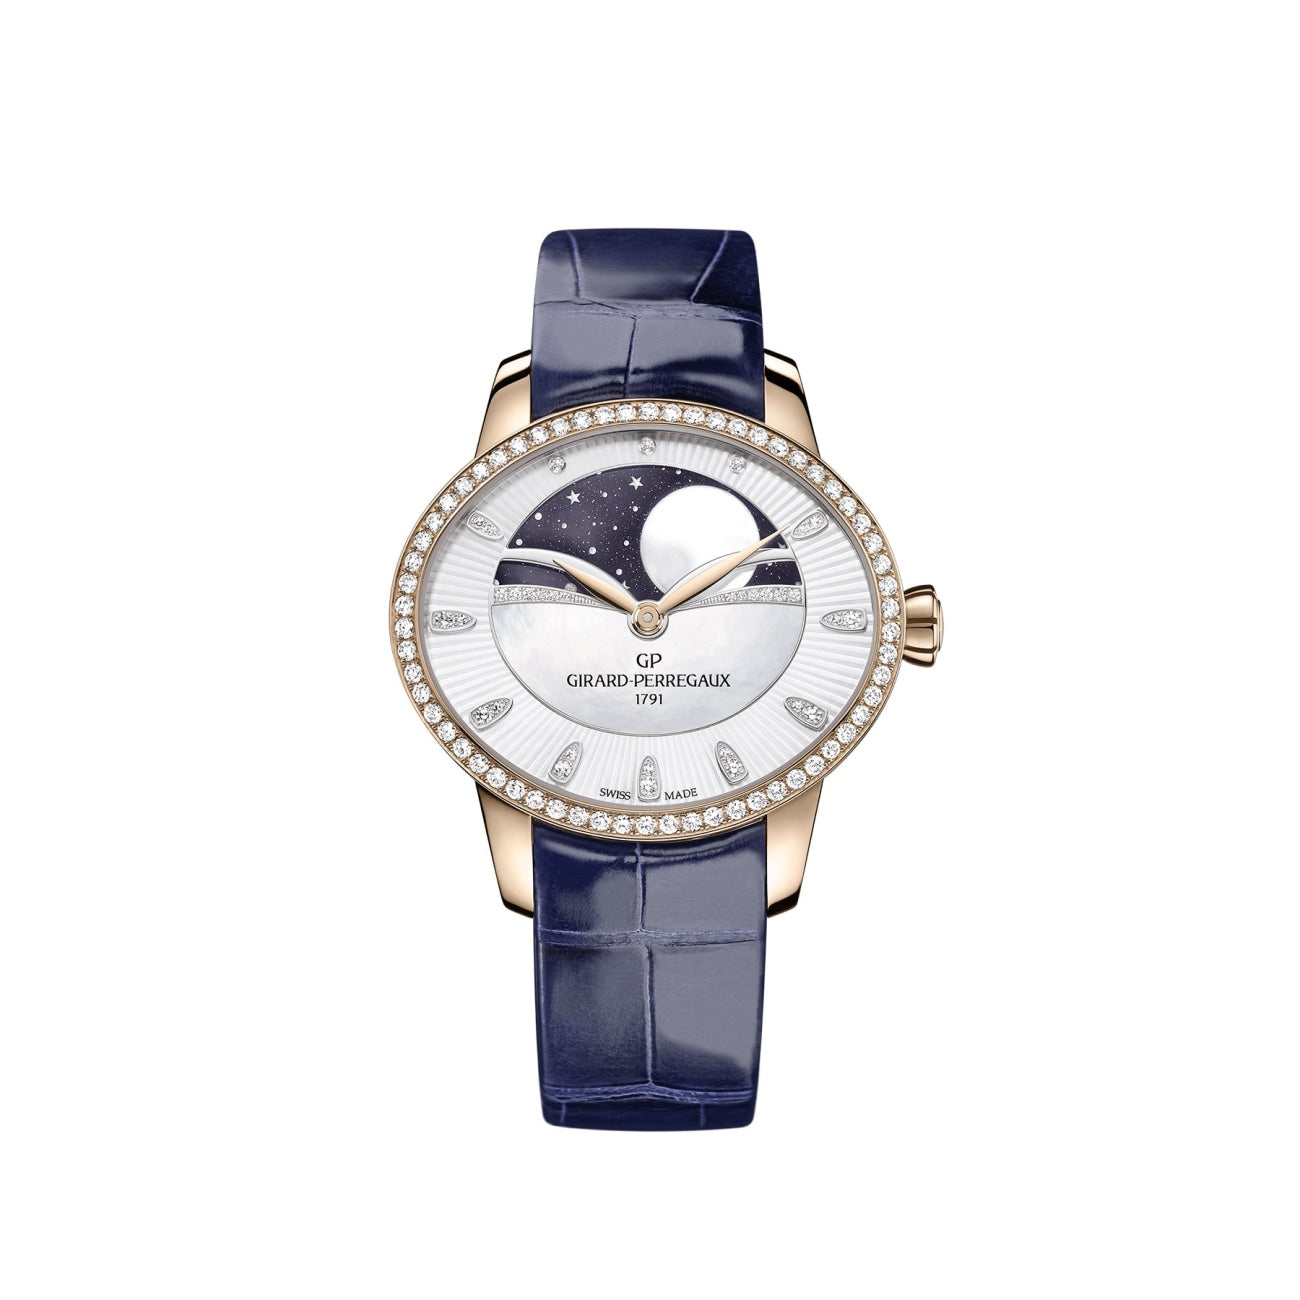 Girard-Perregaux Watches - CATS EYE CELESTIAL | Manfredi Jewels